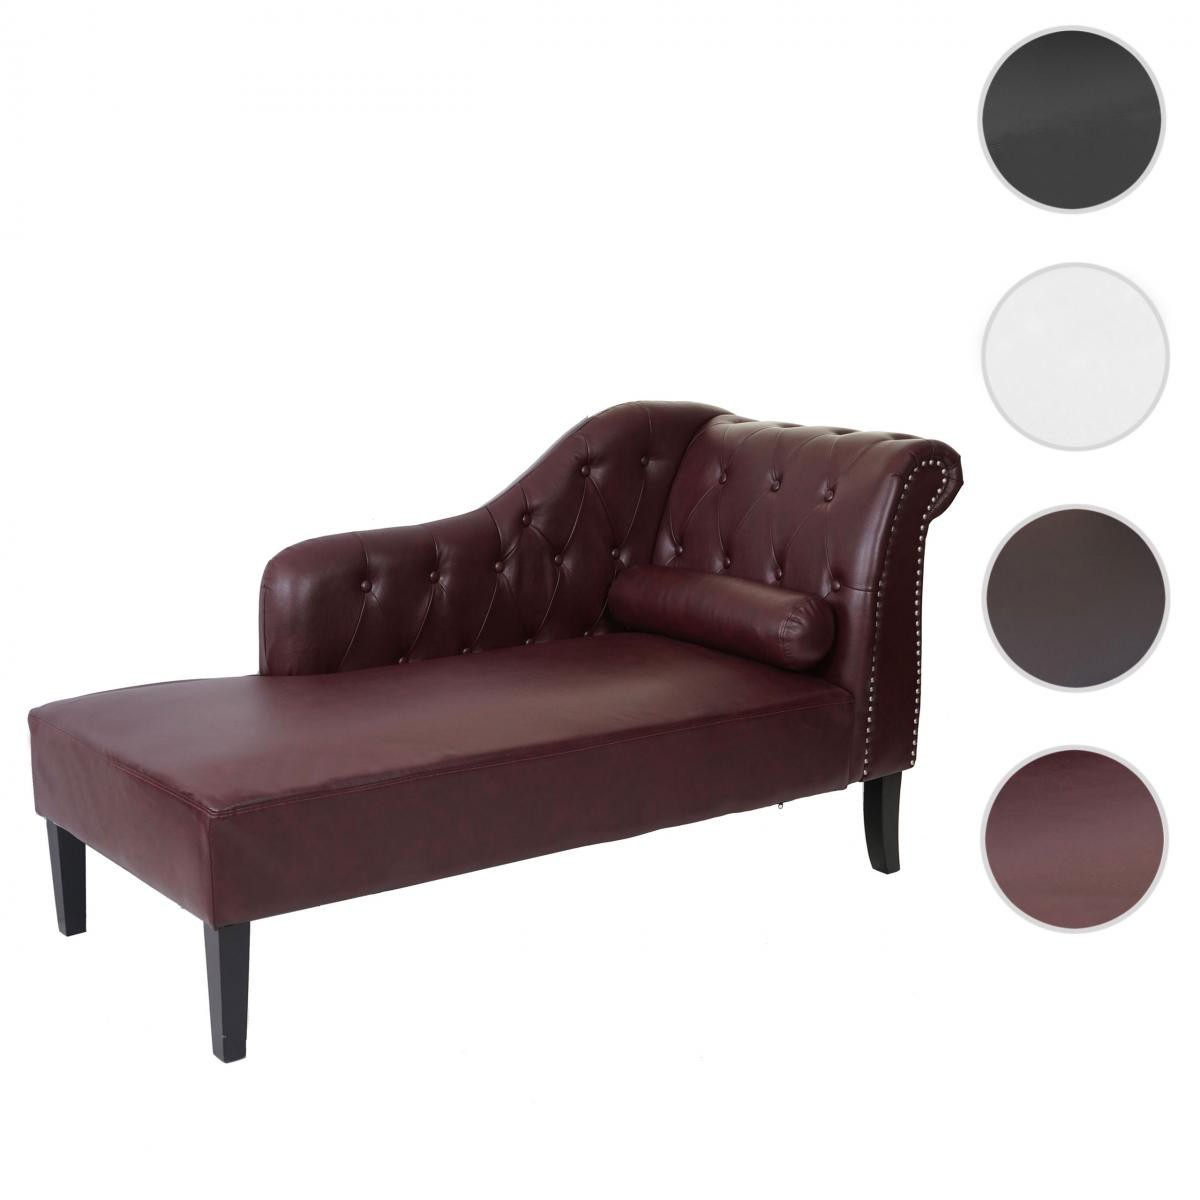 Mendler Chaise longue de luxe Chesterfield, cuir synthétique ~ rouge-brun